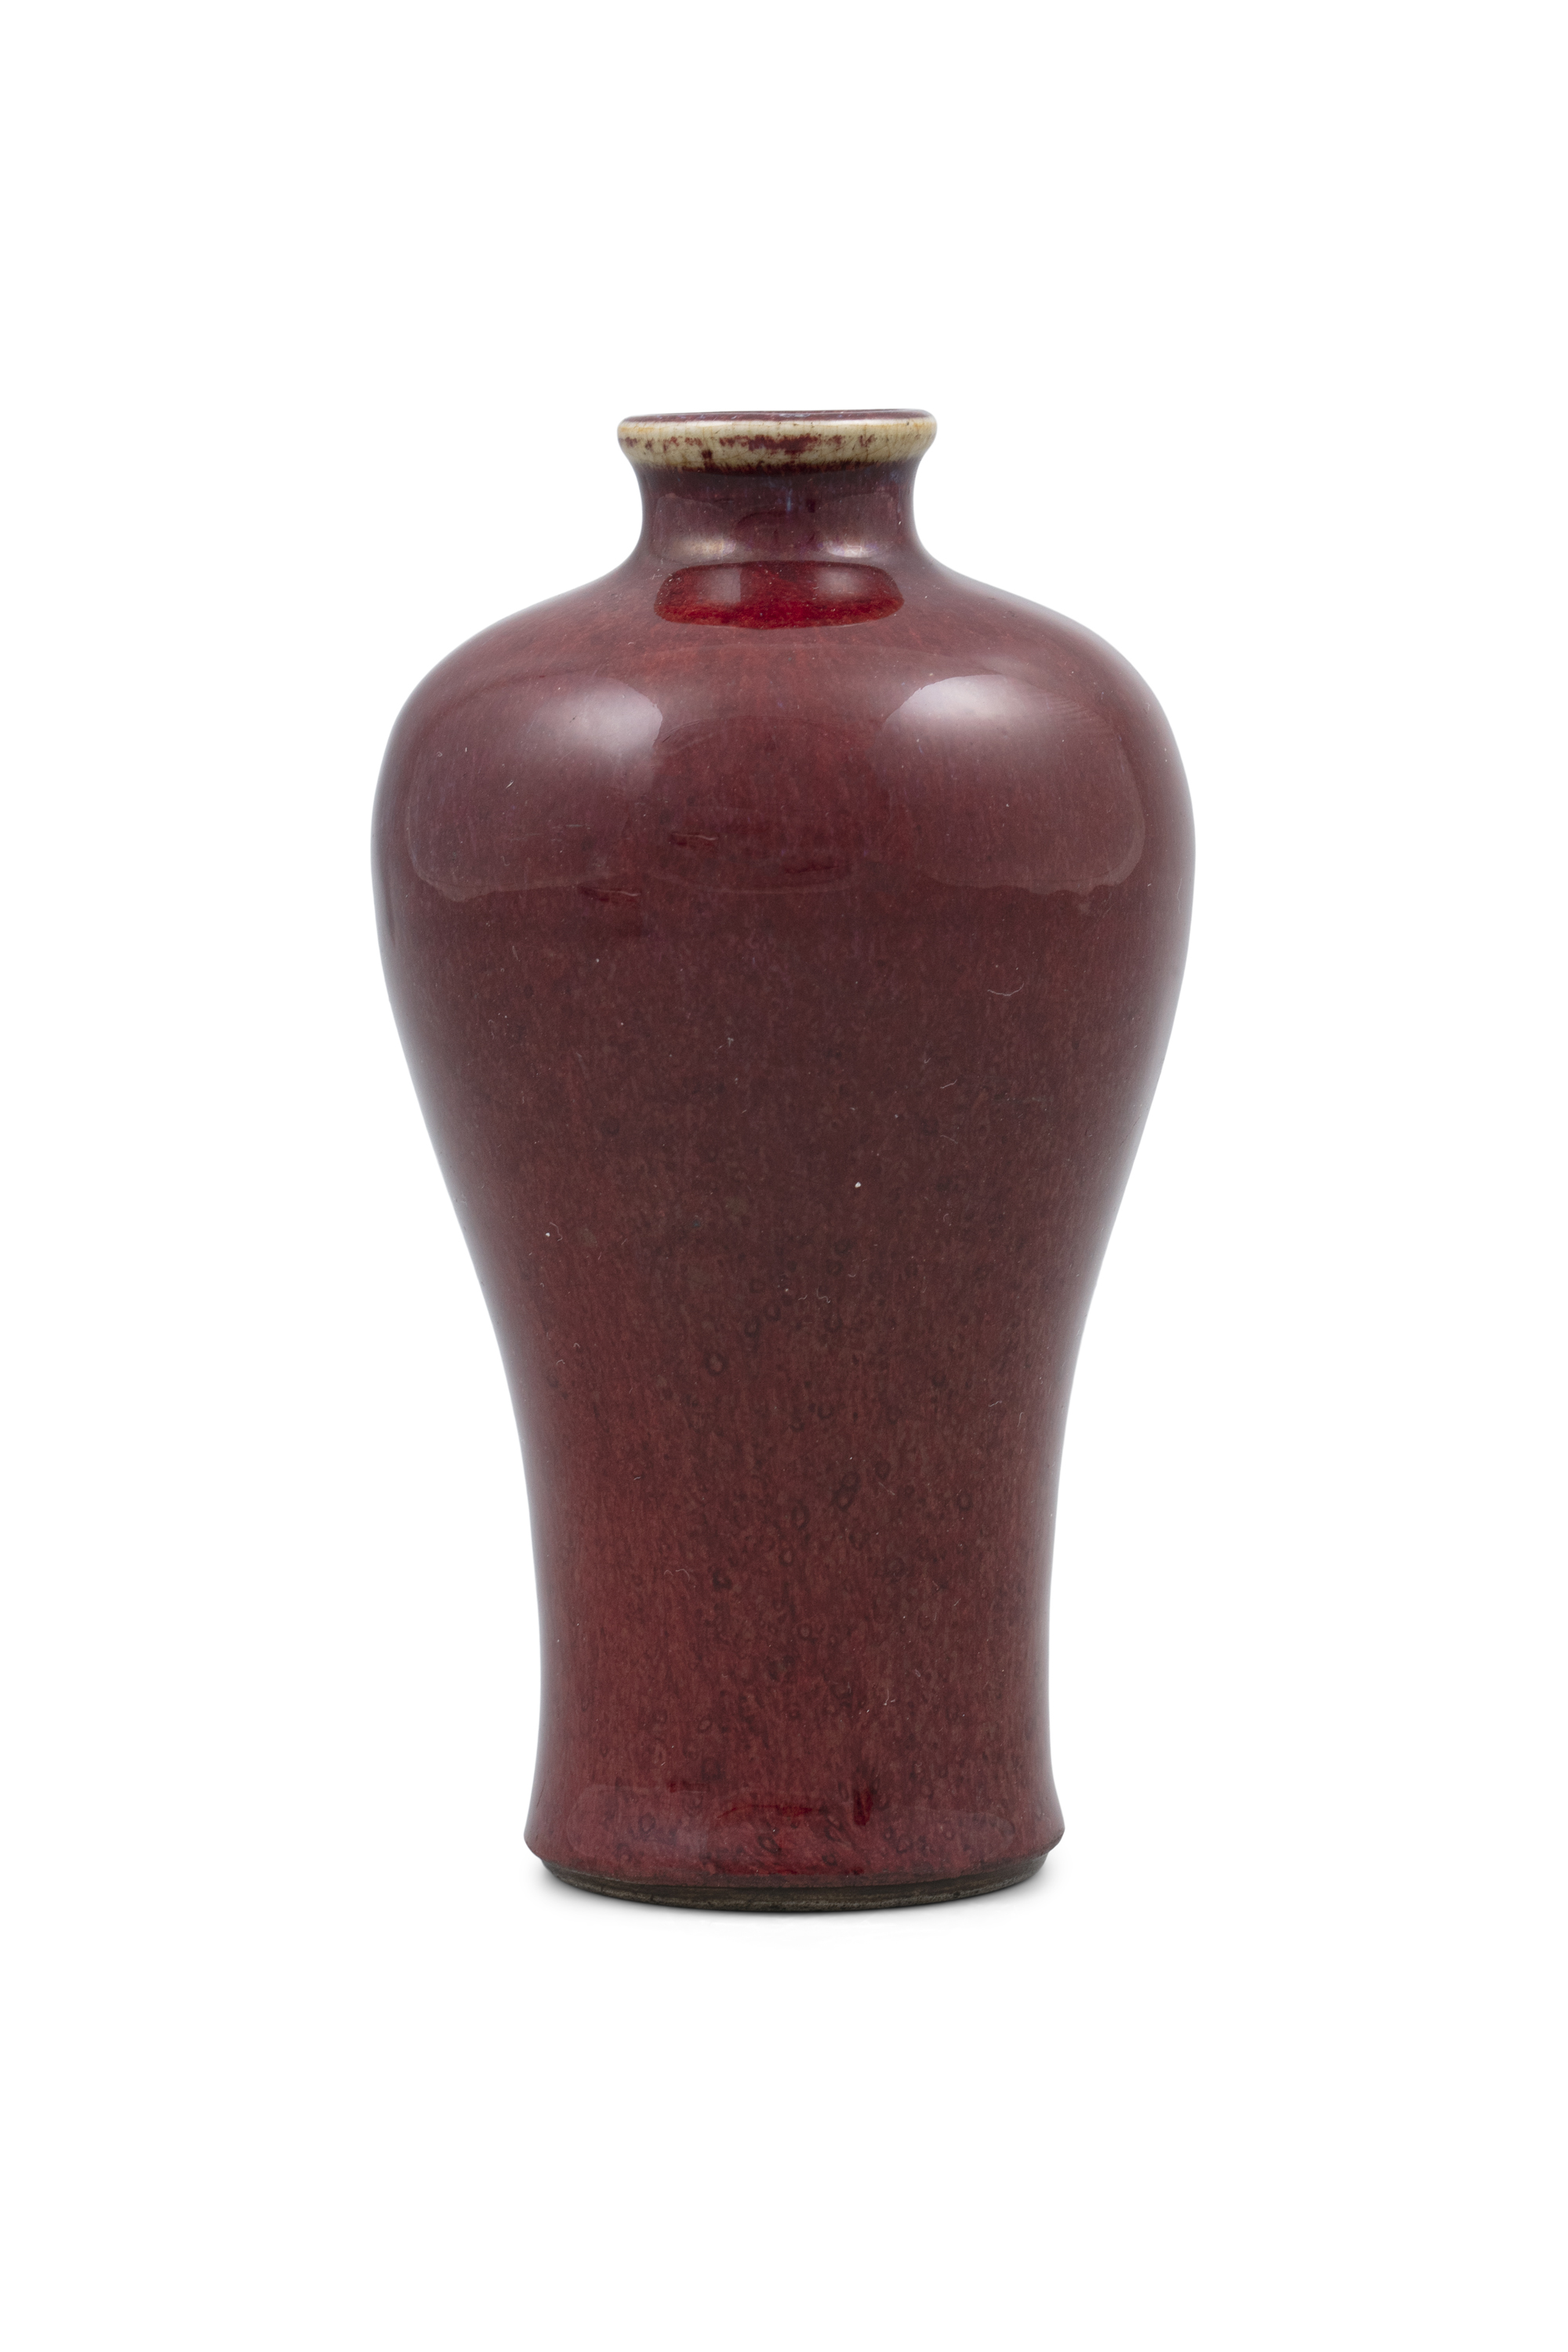 A FLAMBE GLAZED PORCELAIN MEIPING VASE China, Qing Dynasty, Most likely Kangxi period Bearing